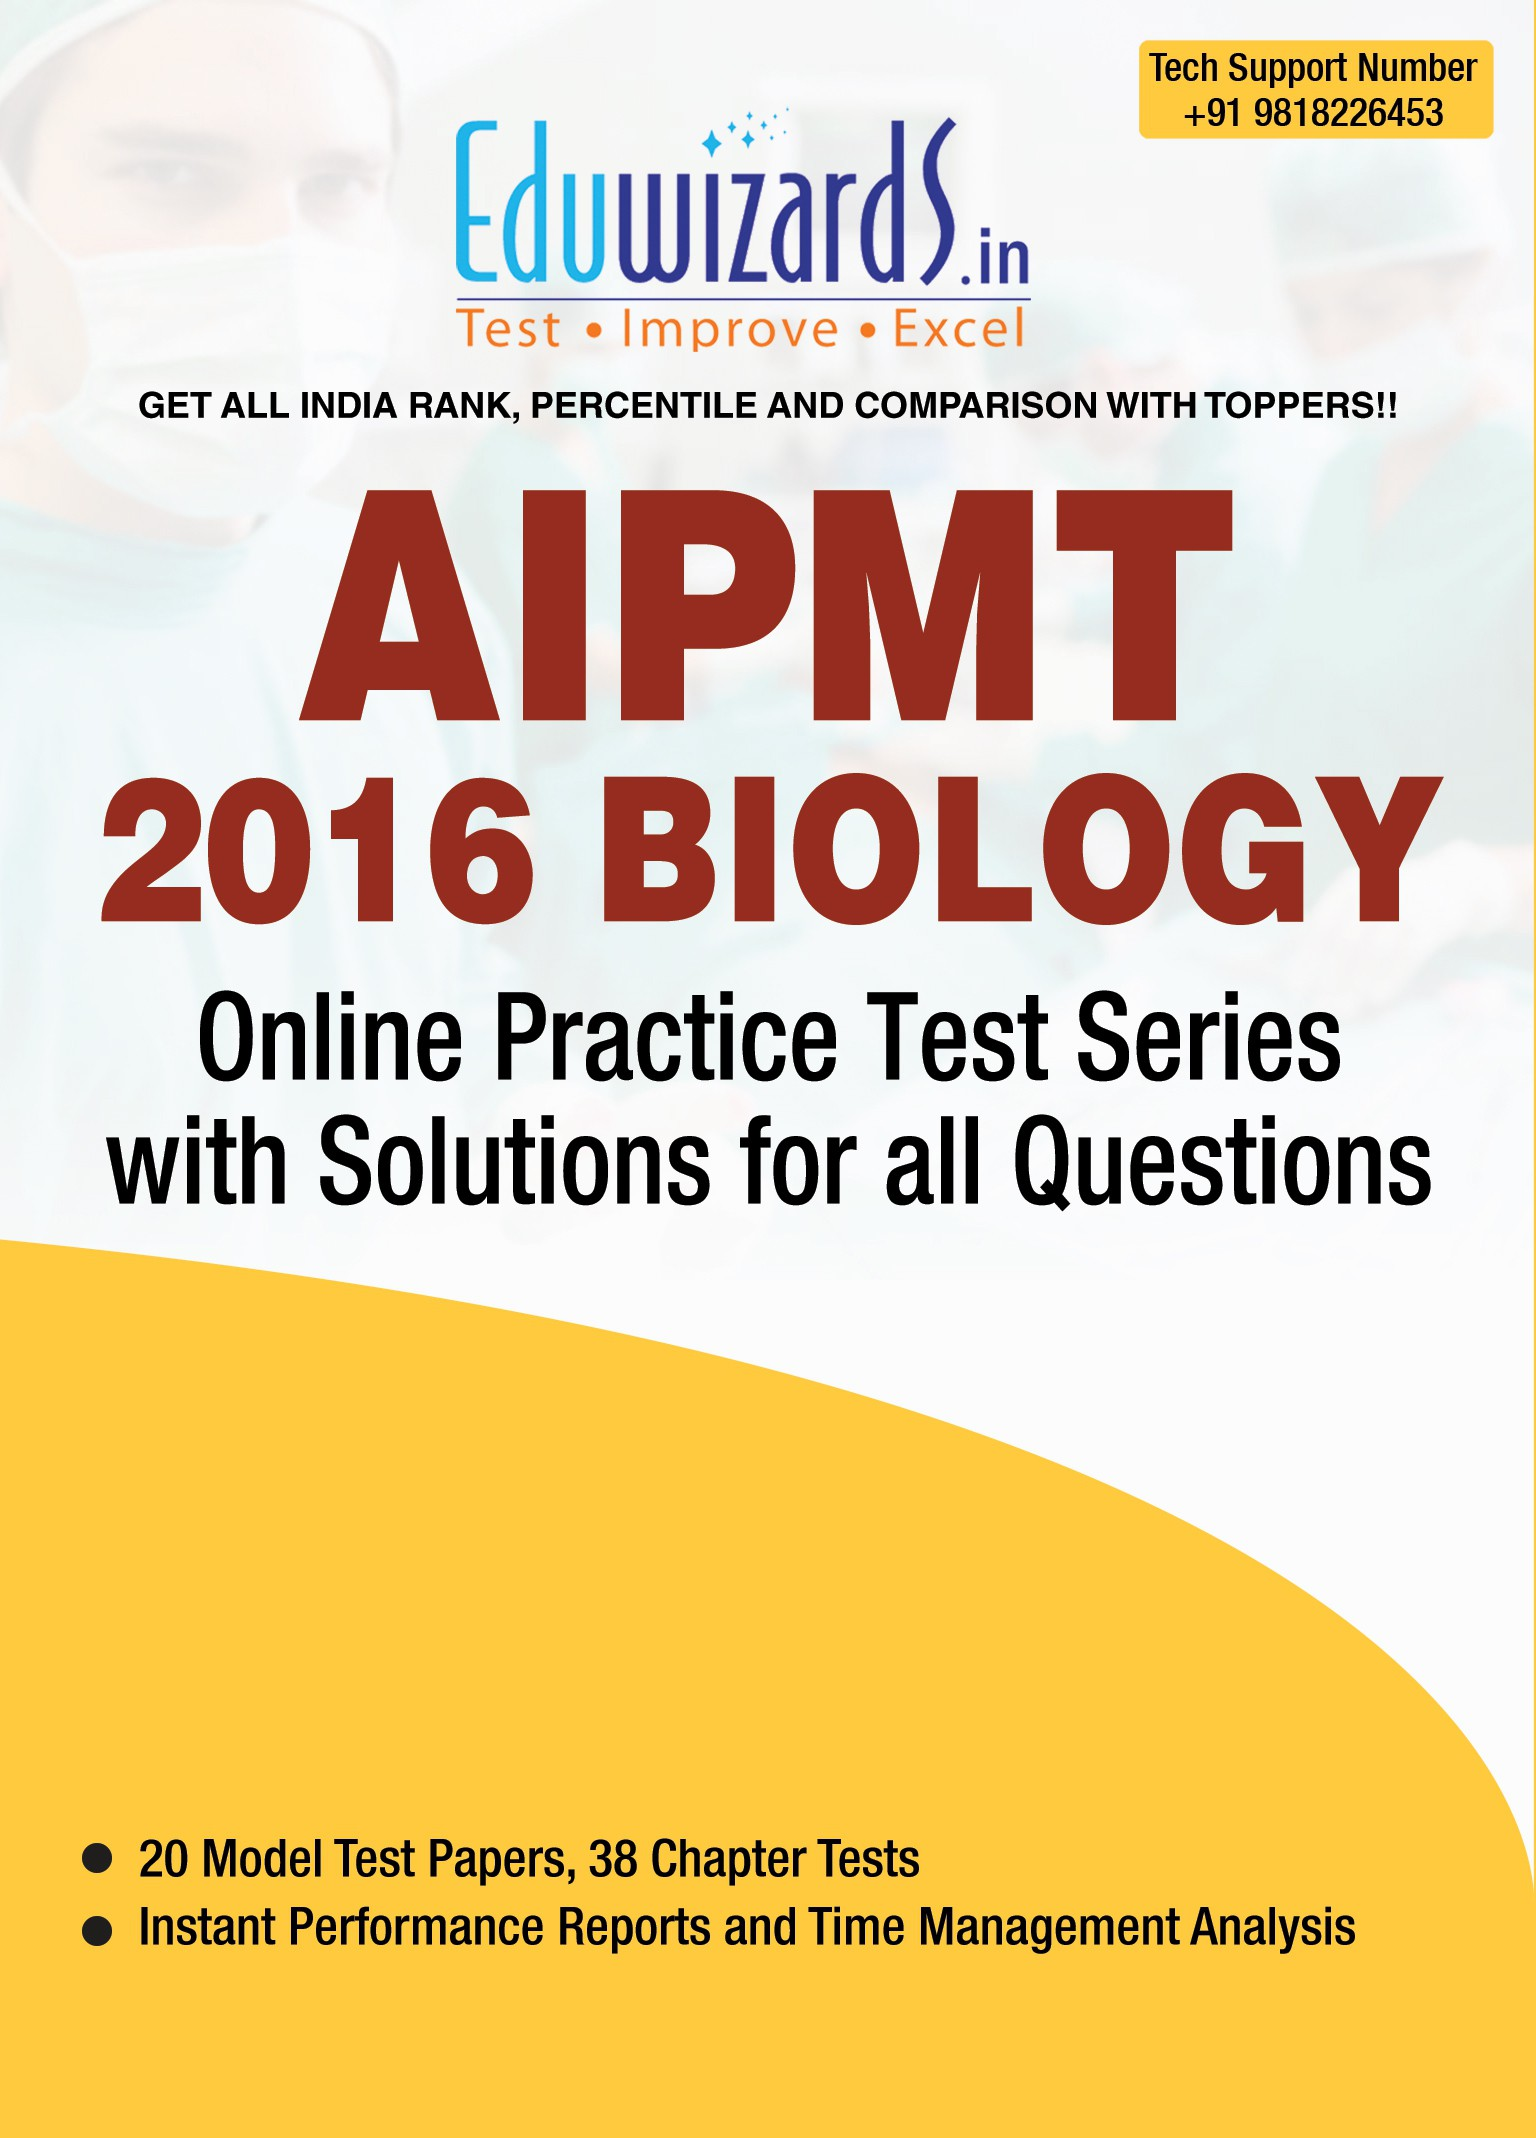 Eduwizards AIPMT 2016 Biology Online Test Series Online Test(Voucher)